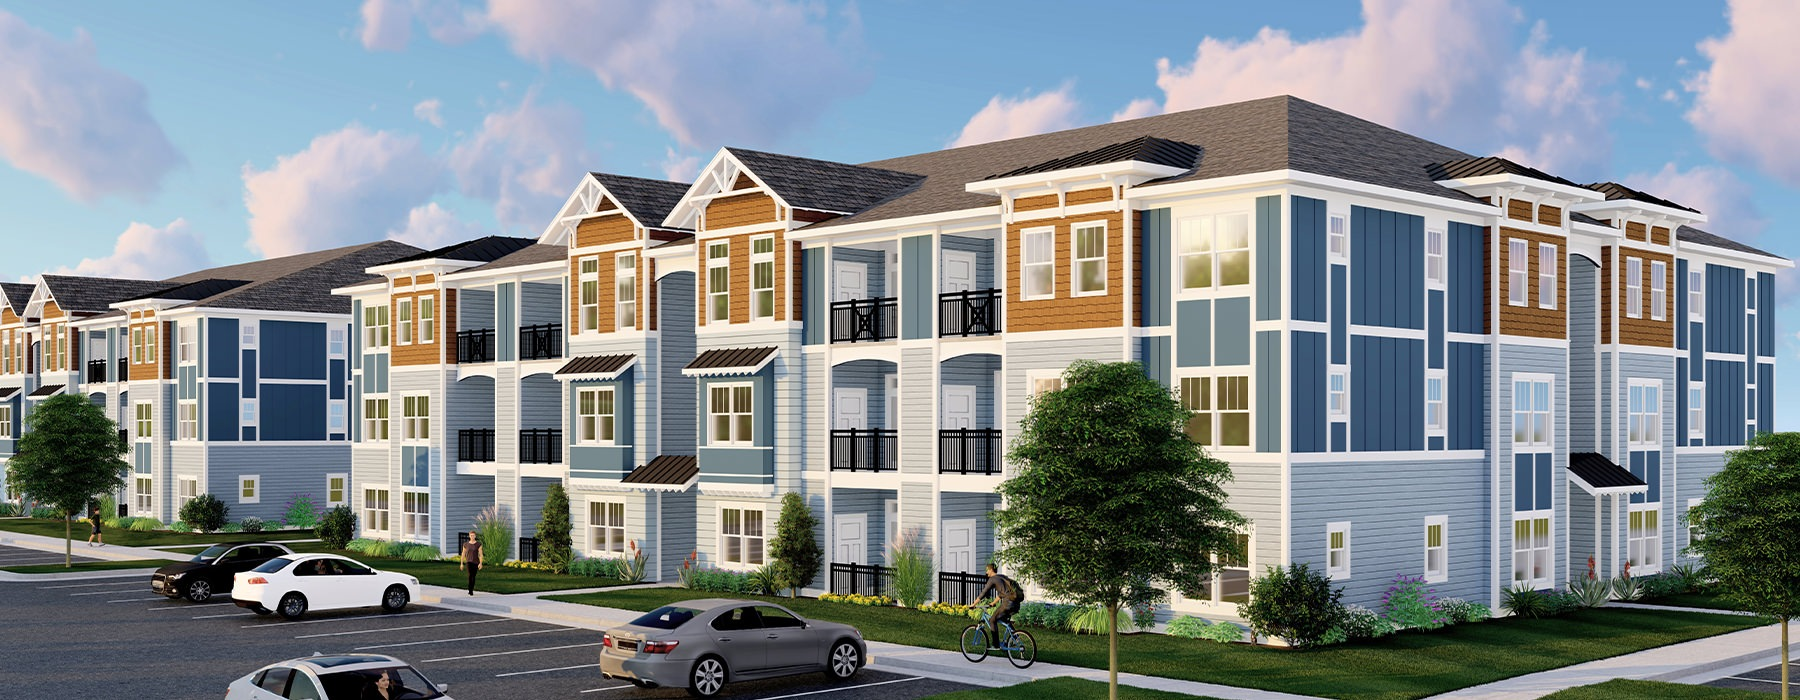 Hawthorne at Pine Forest three-story apartments with balconies